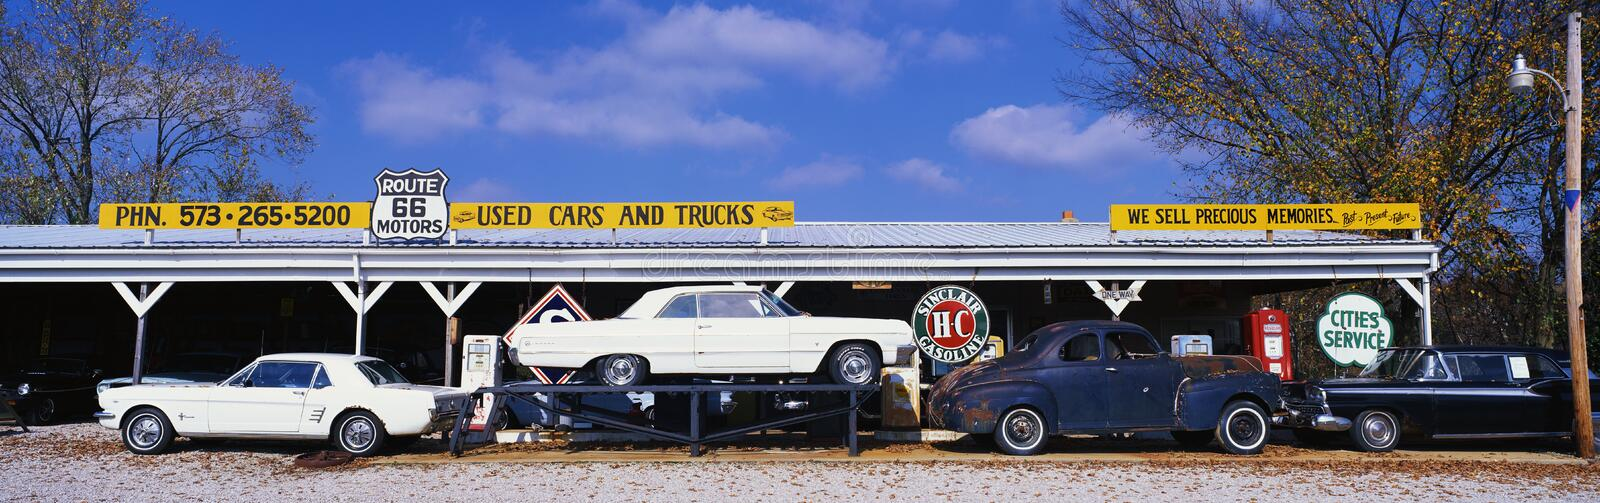 This is a vintage used car dealer along Route 44. It is the former Old Route 66. It is a true piece of Americana. There is a stock photos